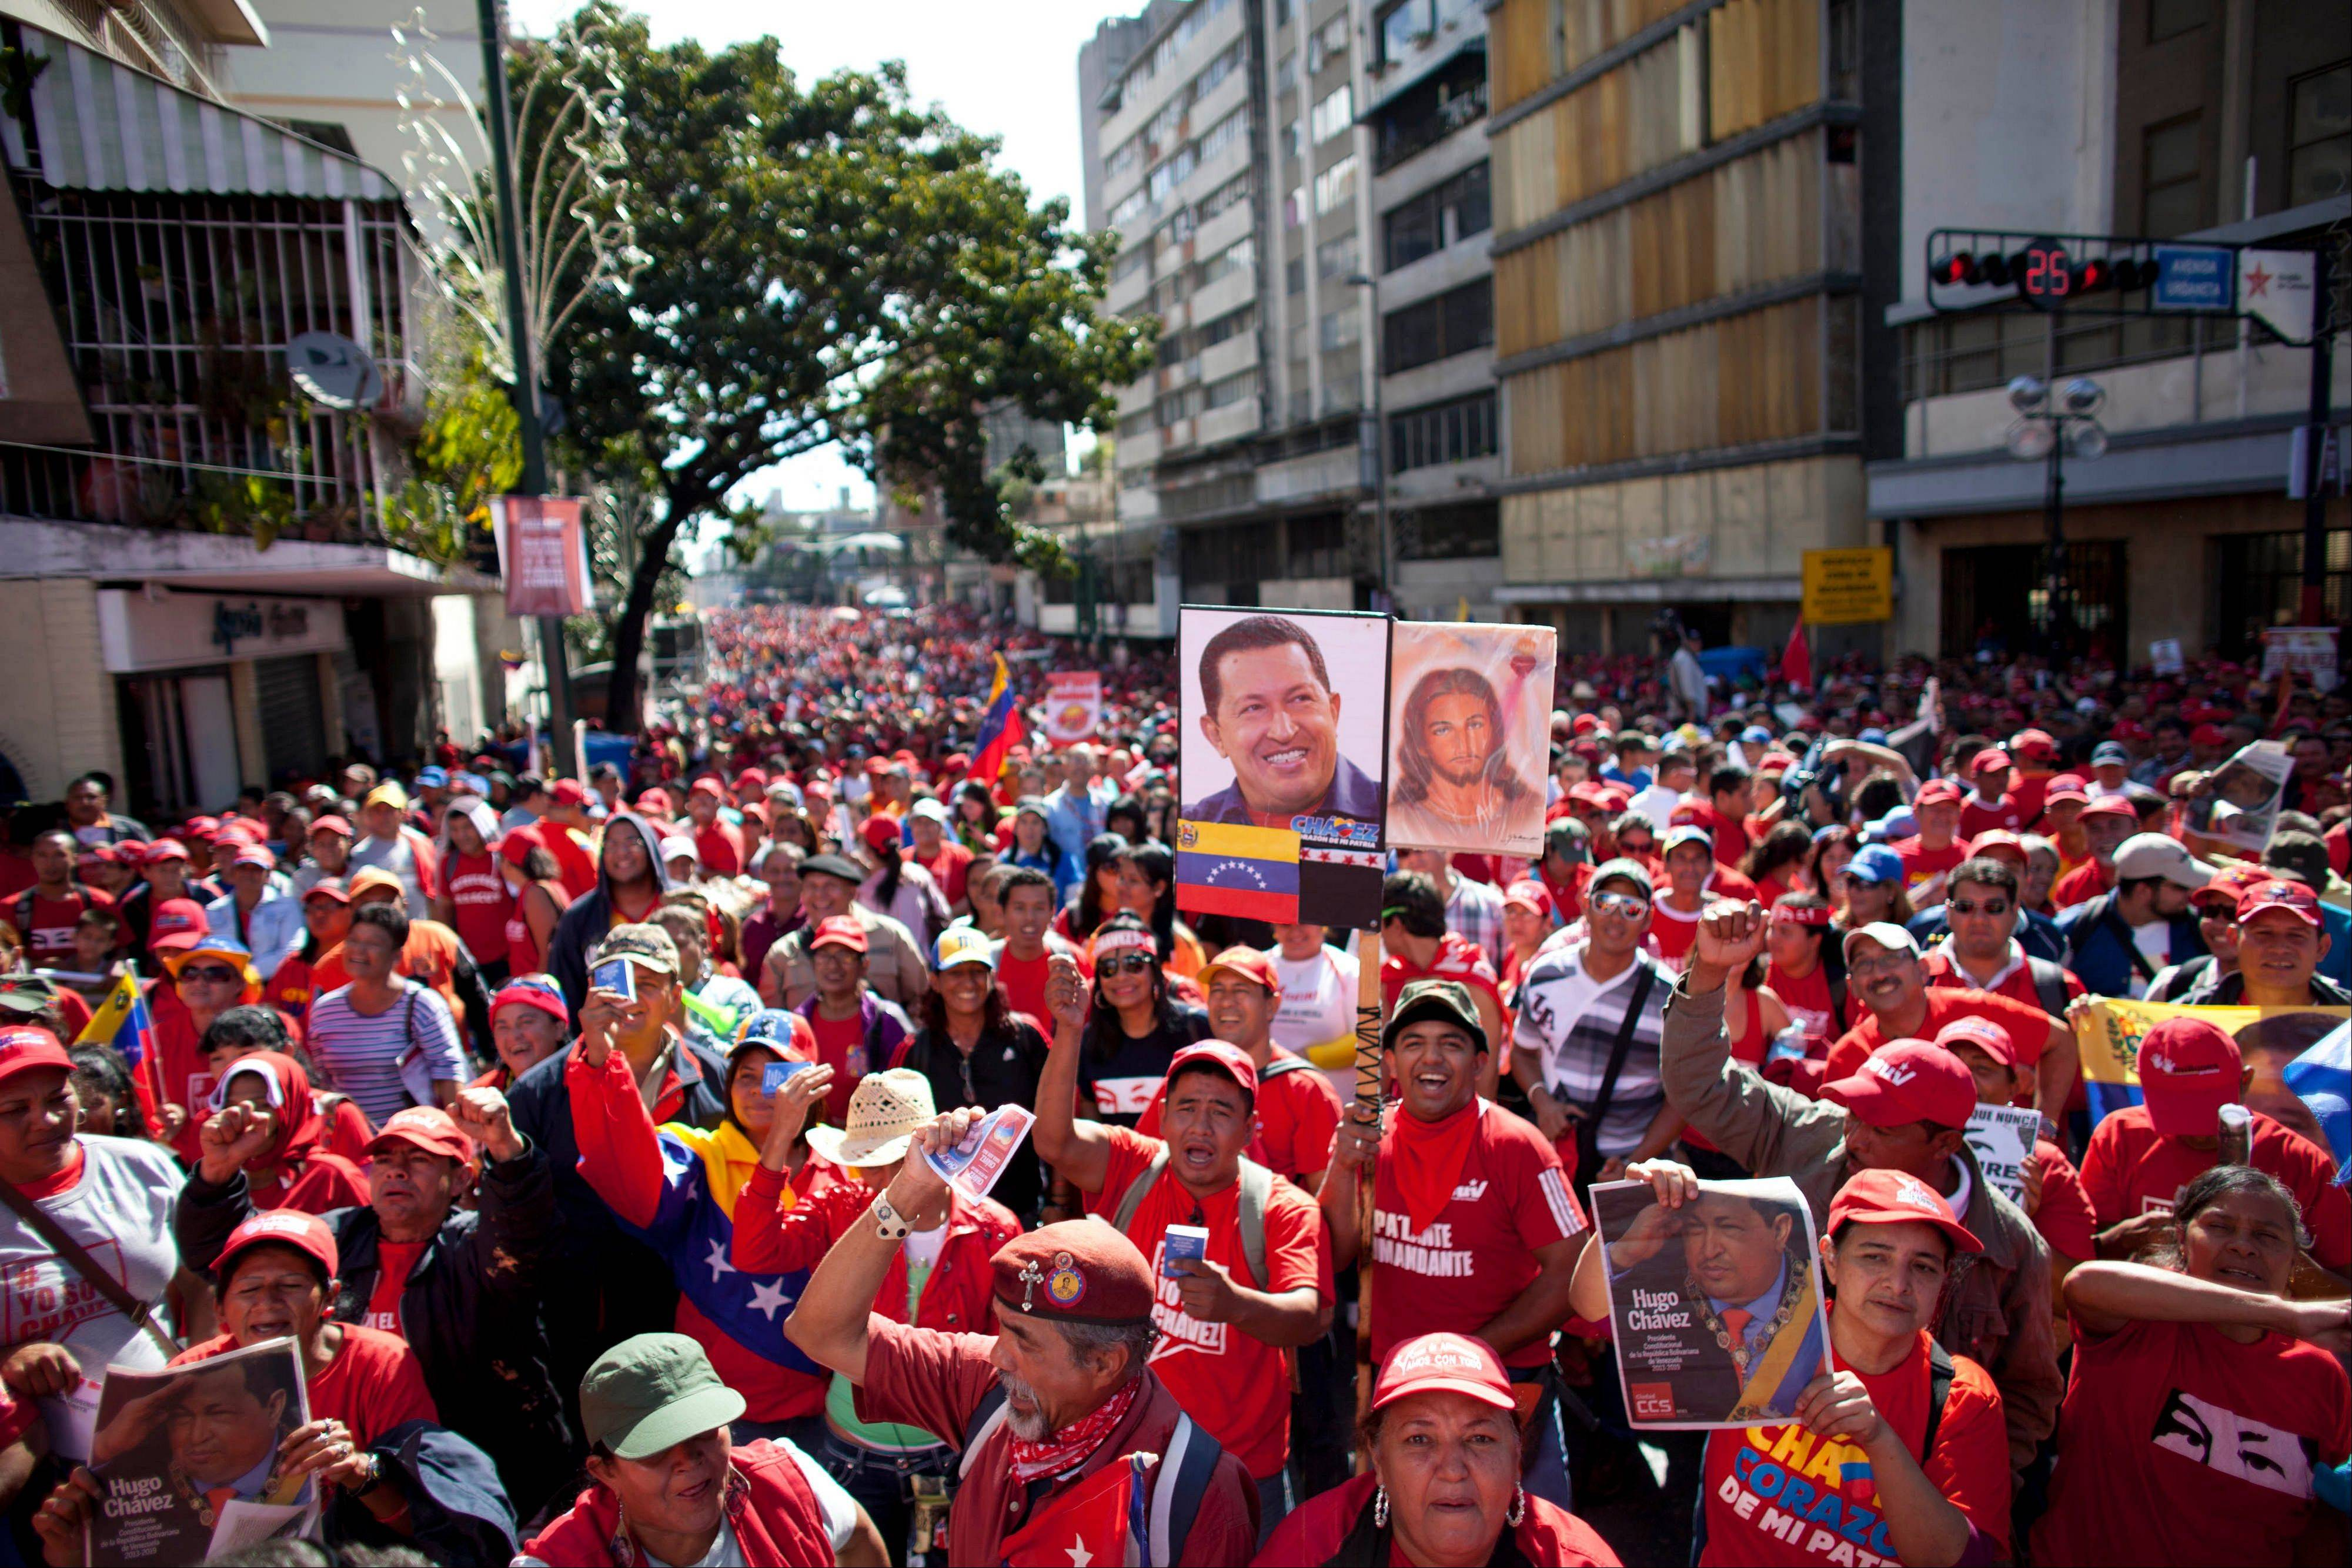 Supporters of Venezuela�s President Hugo Chavez chants slogans during a rally in Caracas, Venezuela, Thursday, Jan. 10, 2013. Hundreds of cheerful supporters rallied outside his presidential palace Thursday in an alternative inauguration for a leader too ill to return home for the real thing.